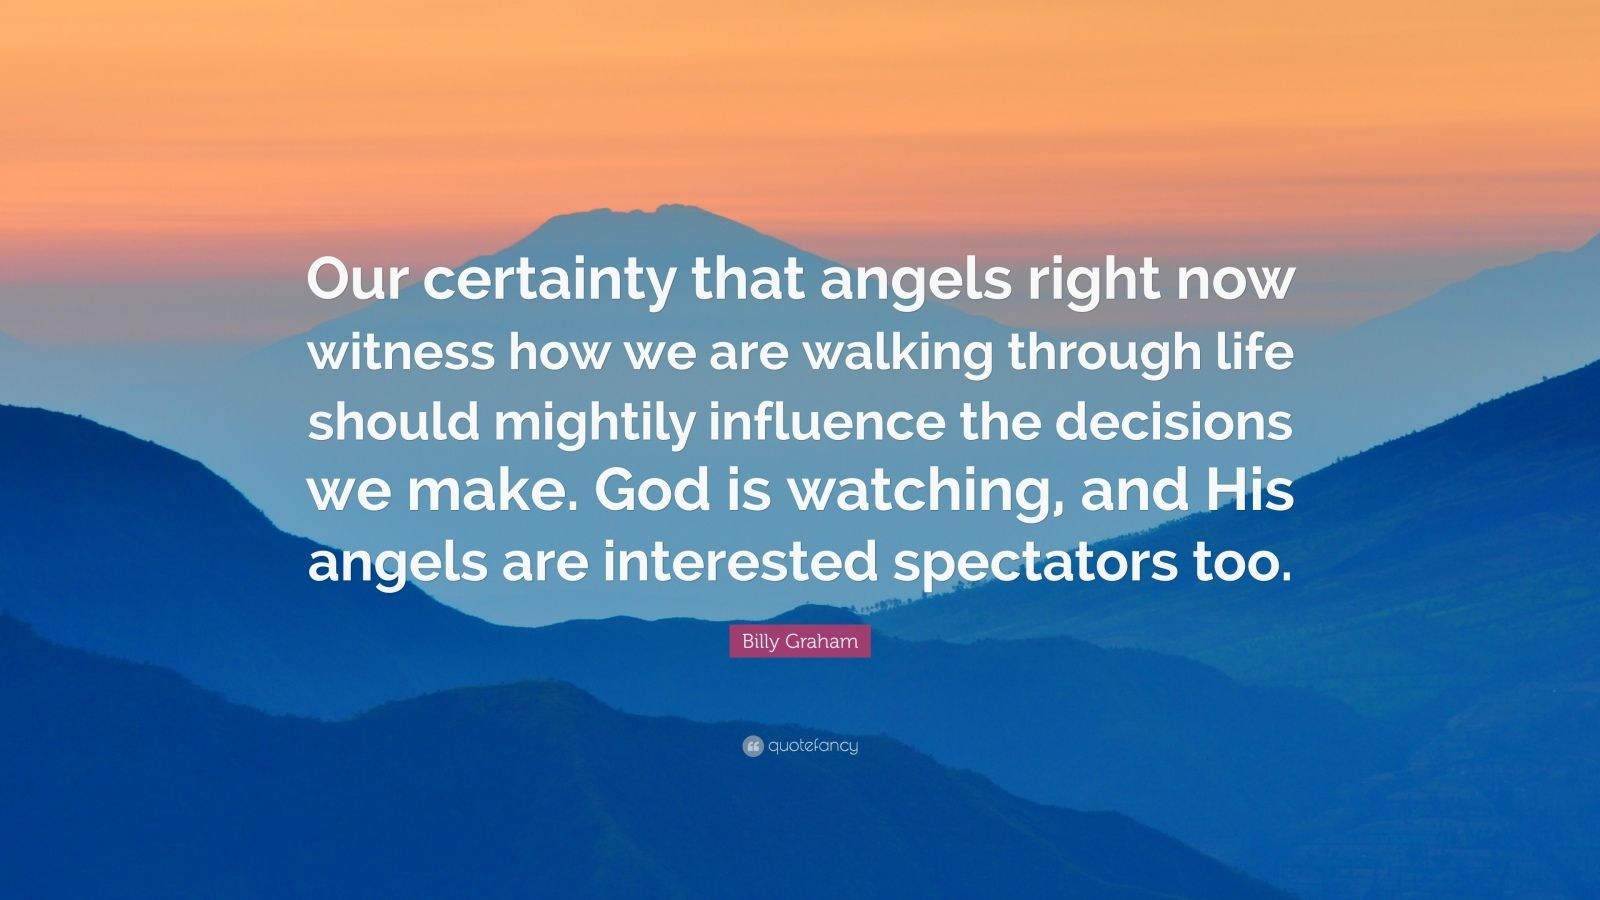 """Billy Graham Quote: """"Our certainty that angels right now witness how we are walking through life should mightily influence the decisions we make. God is watching, and His angels are interested spectators too."""""""